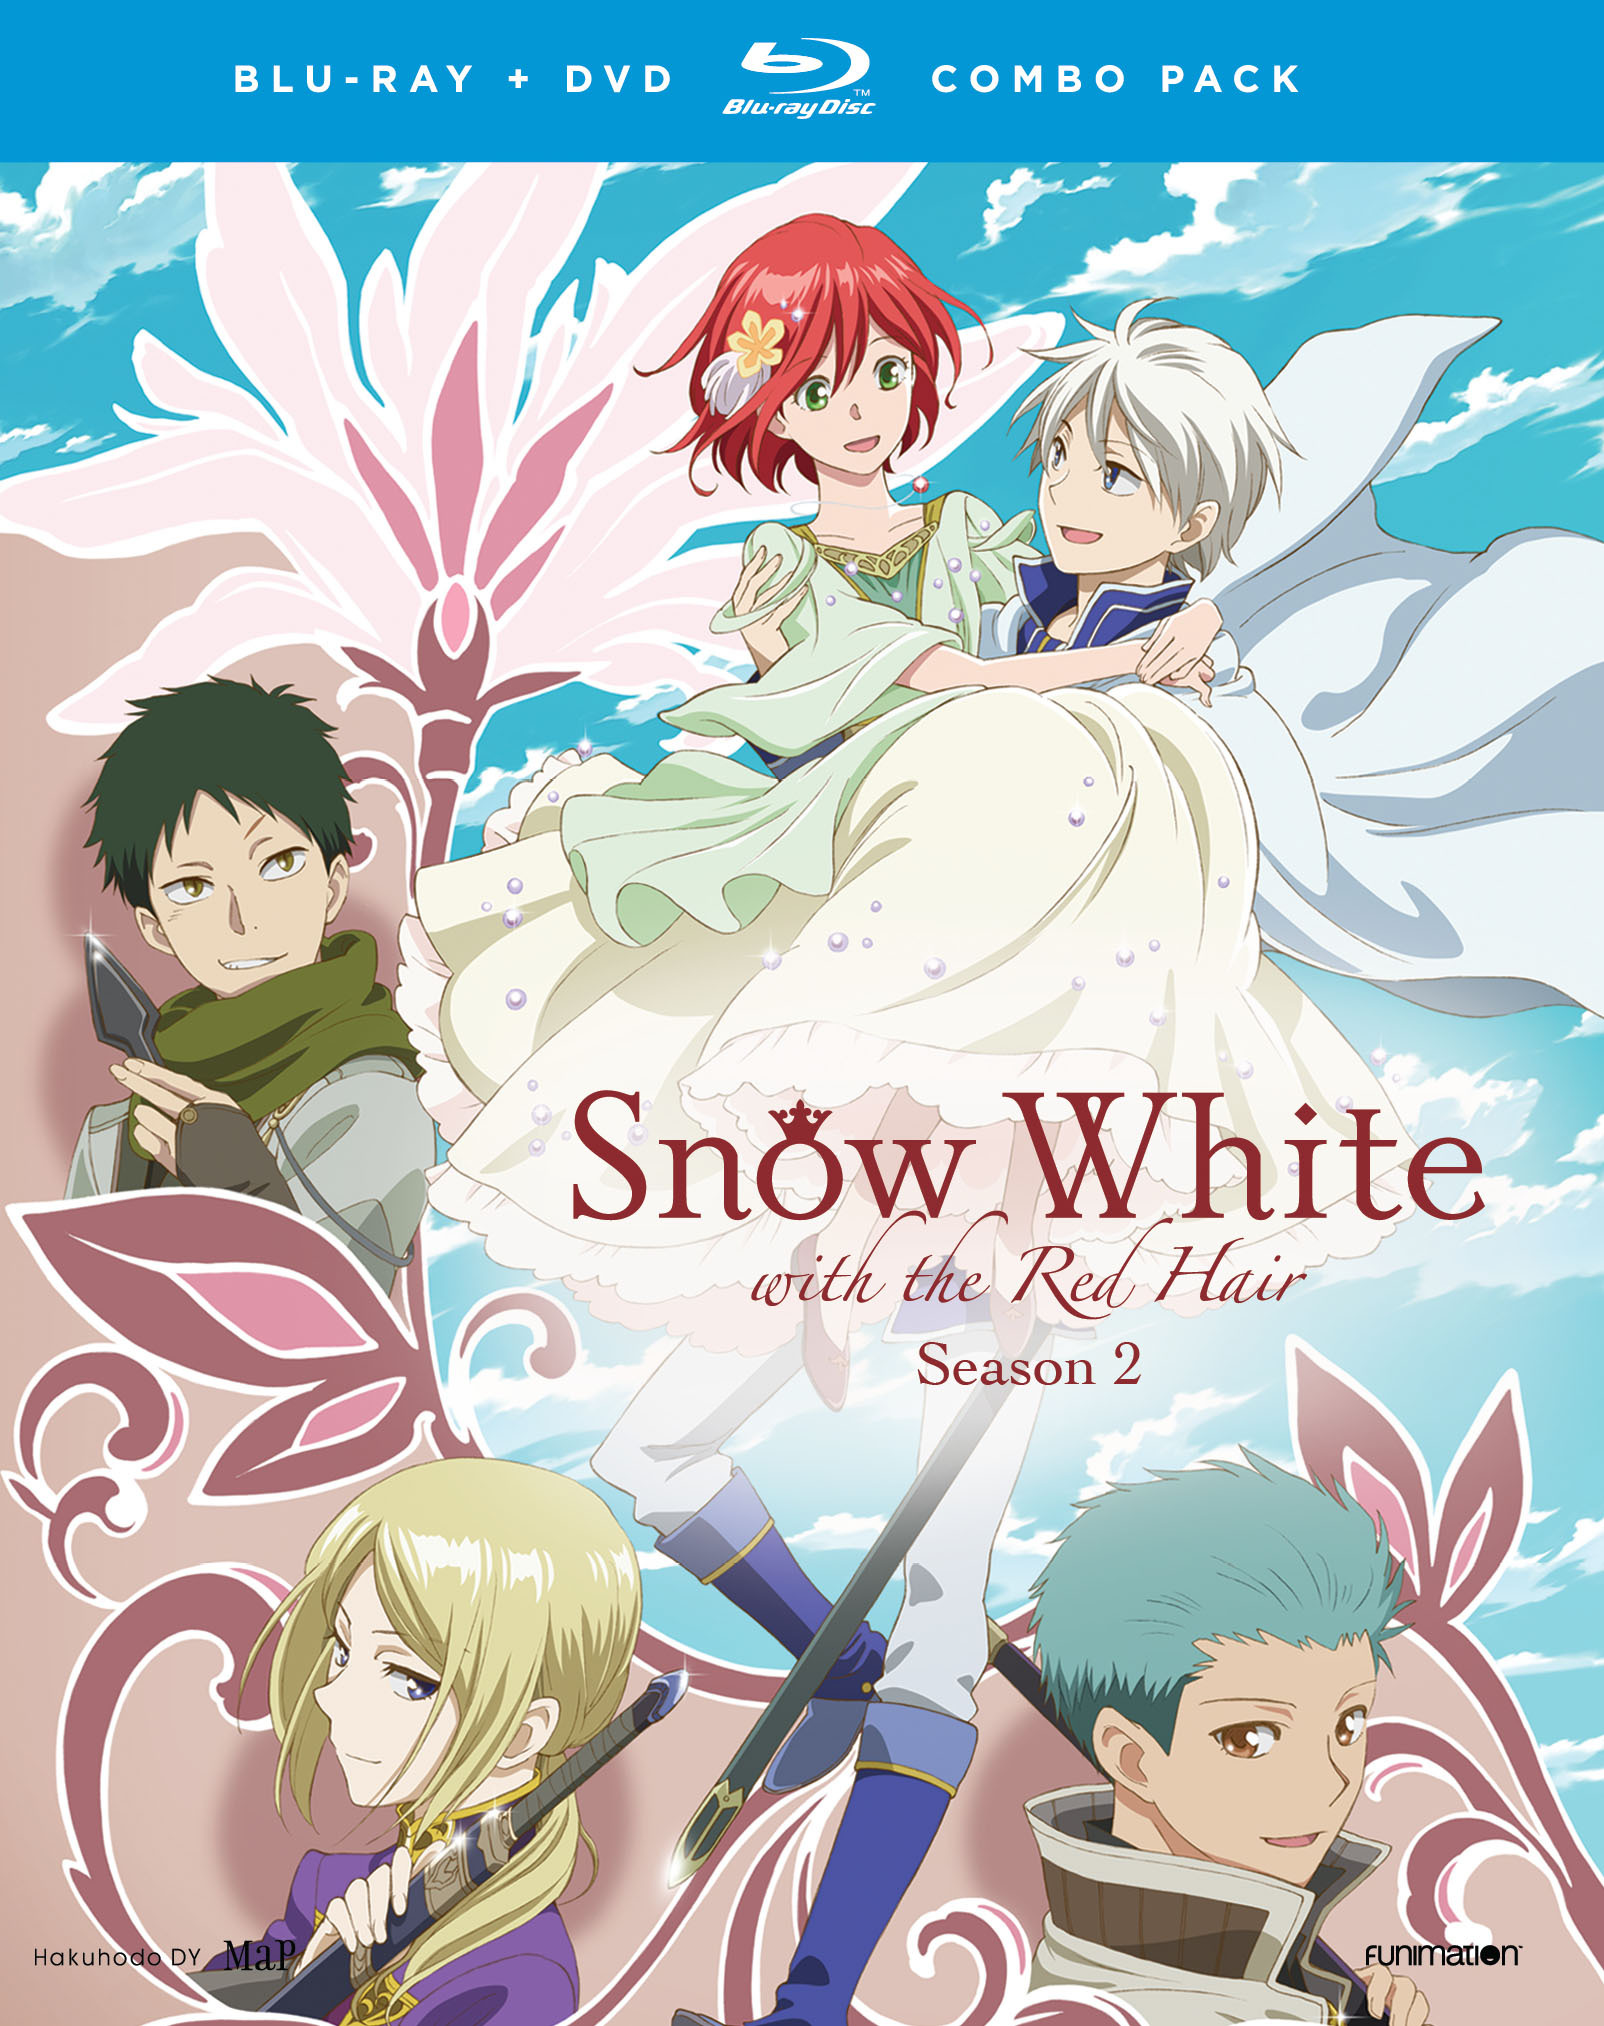 snow white with the red hair season 2 blu ray dvd